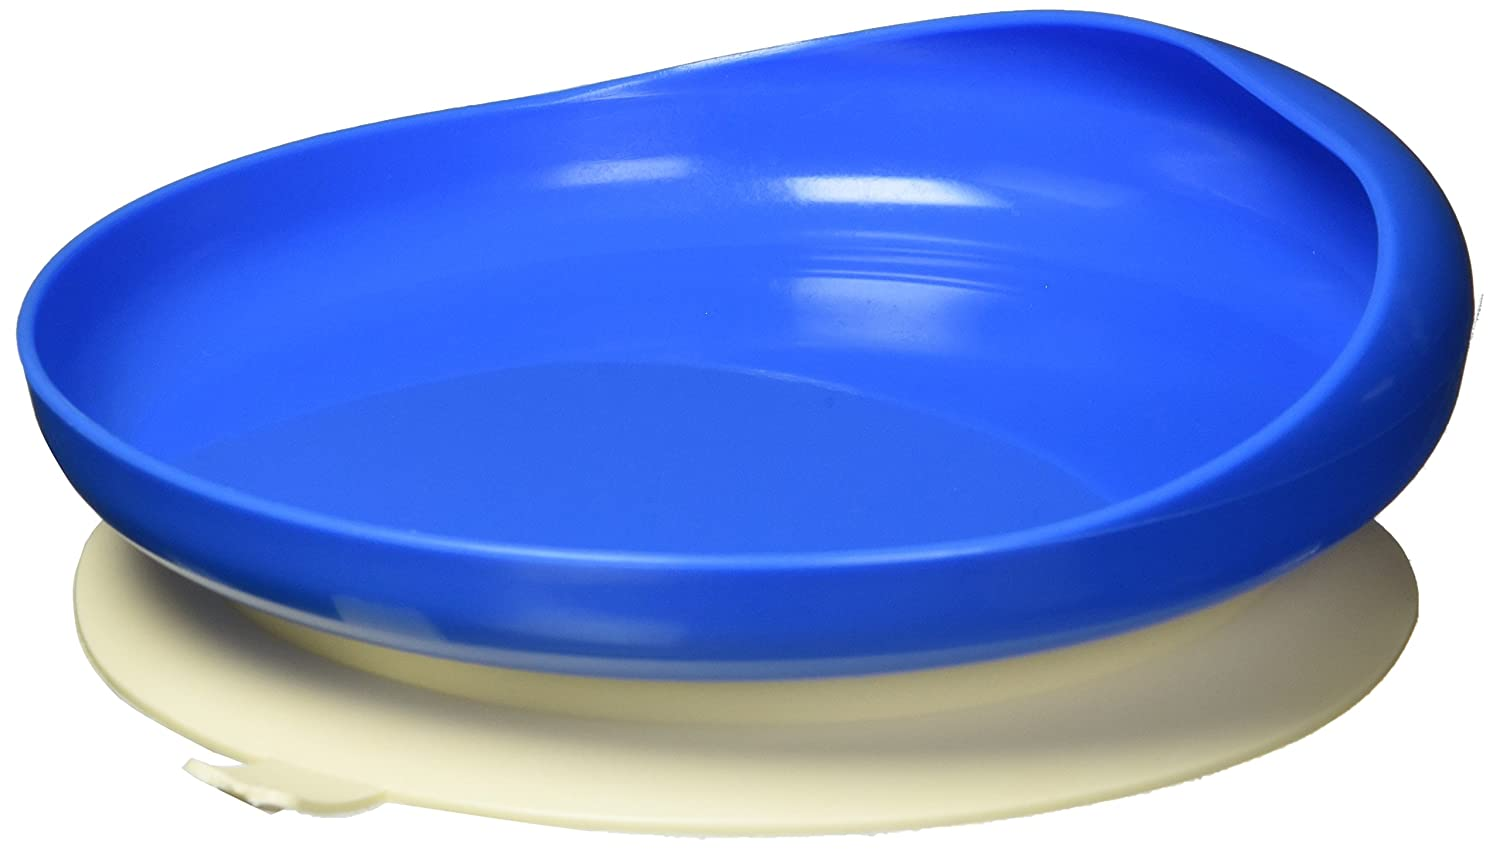 SP Ableware 64215bleware Scooper Plate with Suction Cup Base